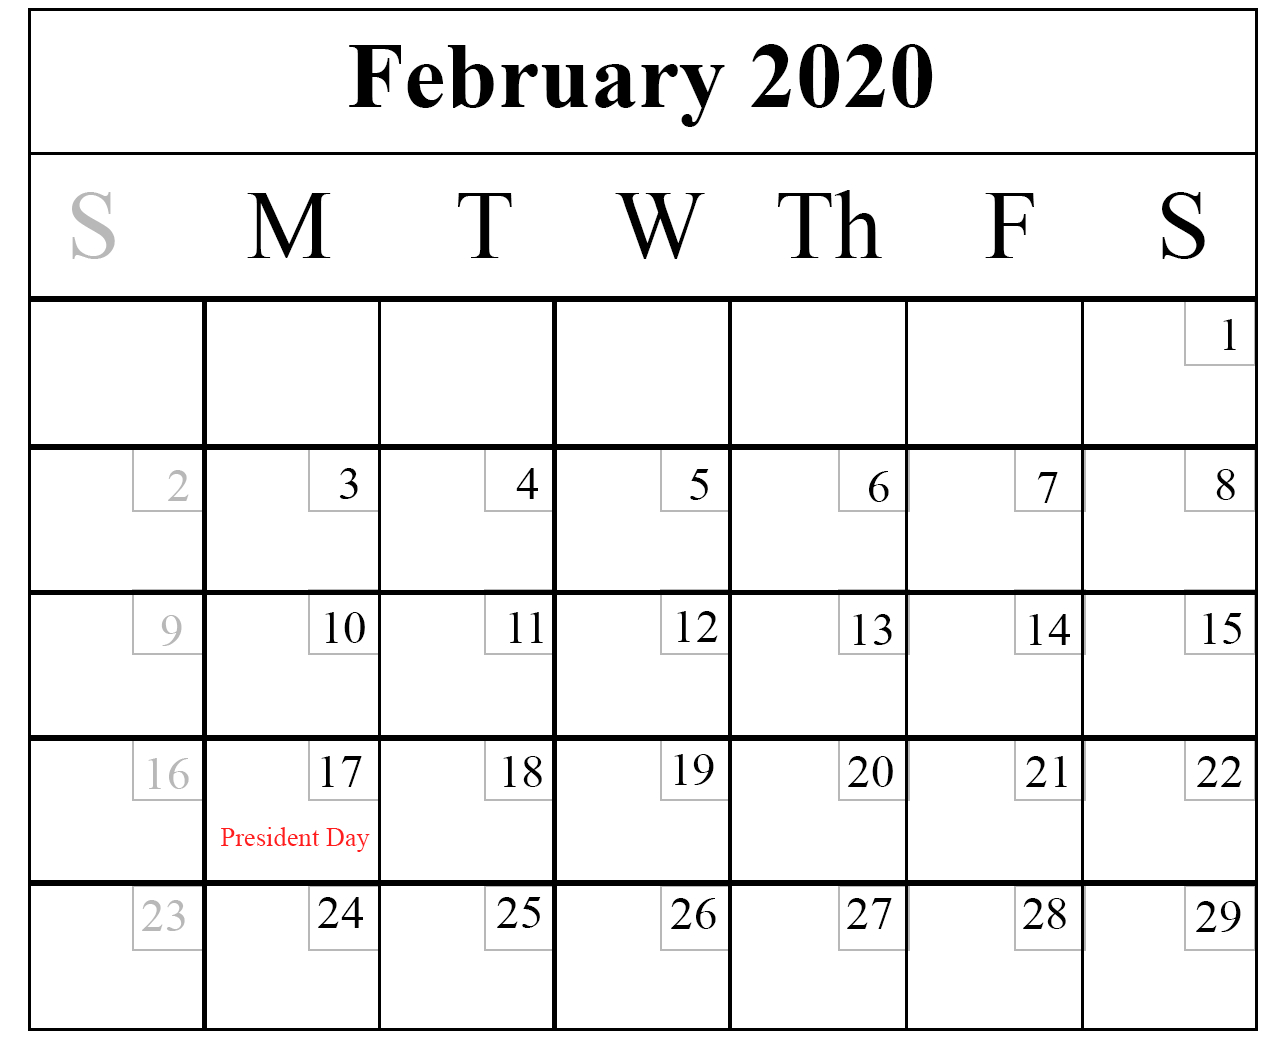 Download February 2020 Printable Calendar In Pdf,Excel Free Printable Monthly Calendar Without Download